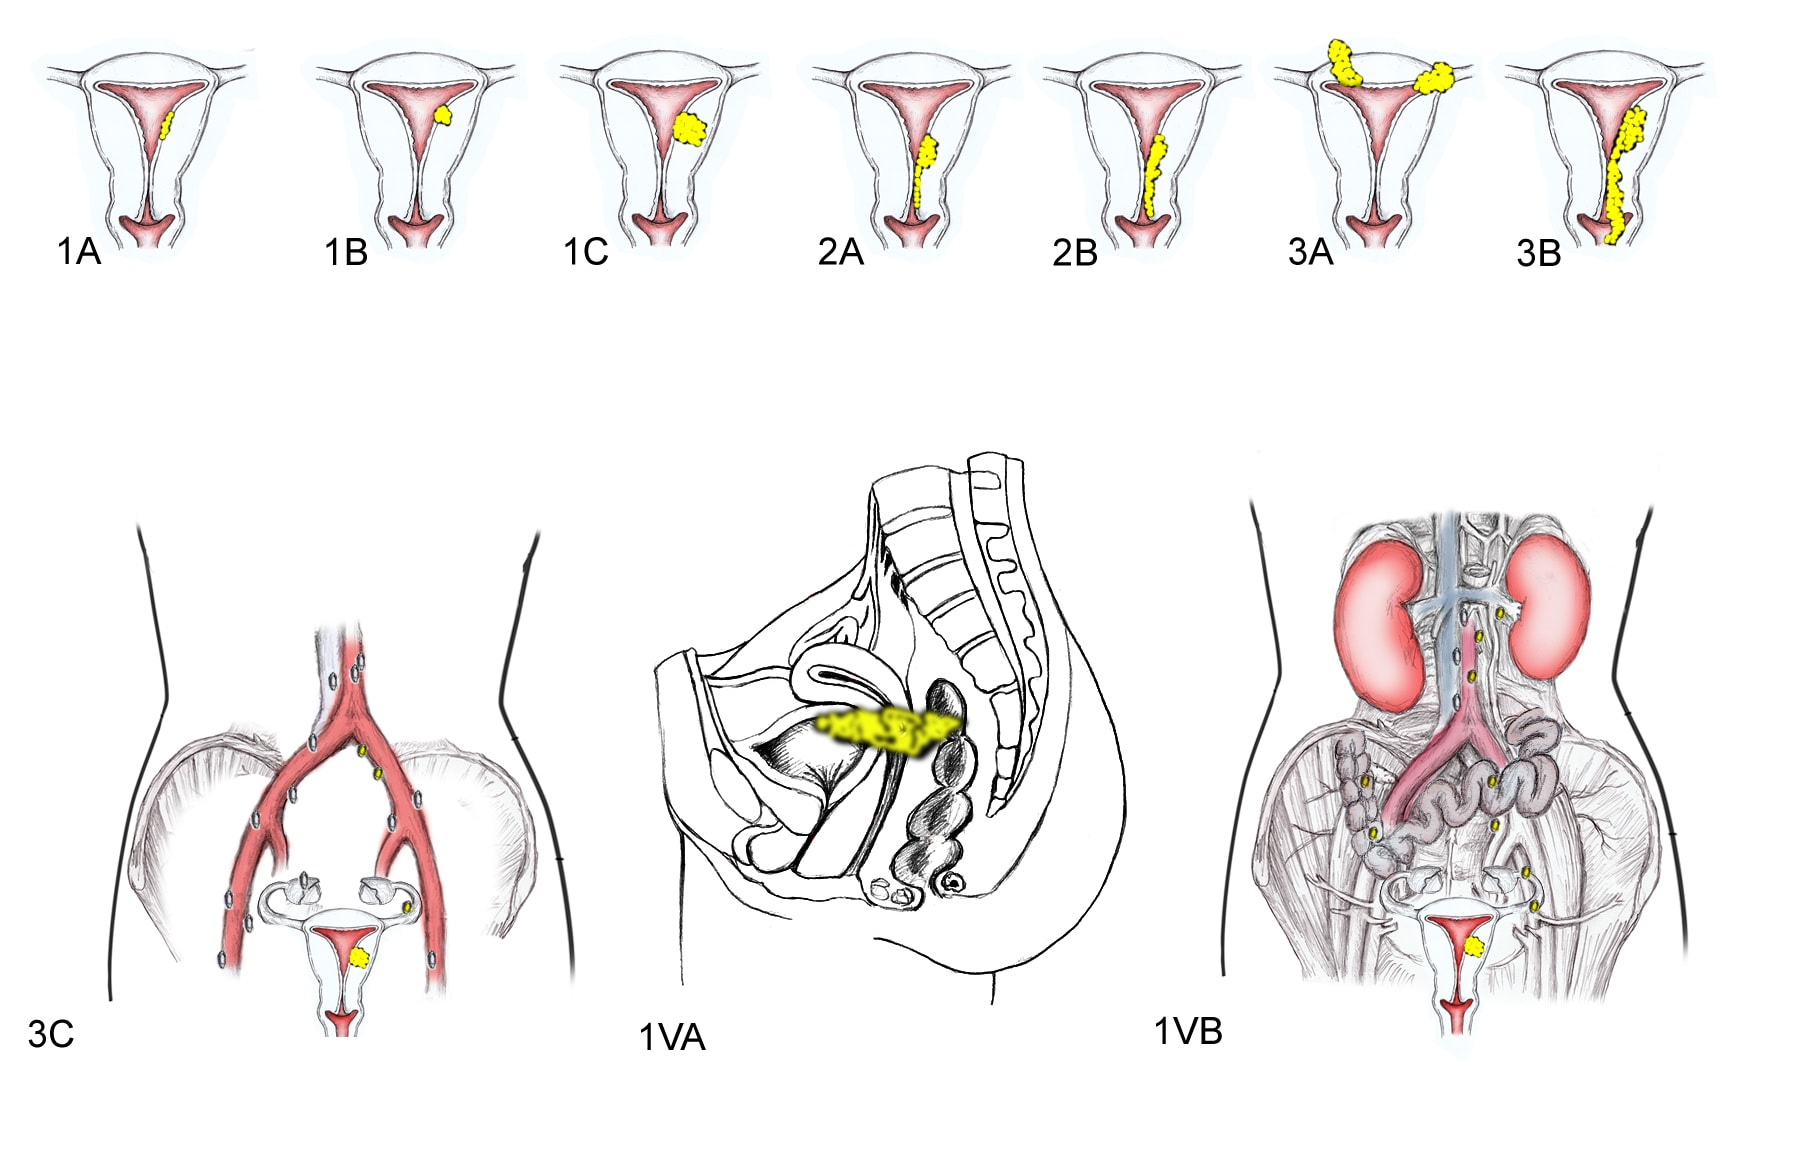 NEW FIGO ENDOMETRIAL CANCER STAGING